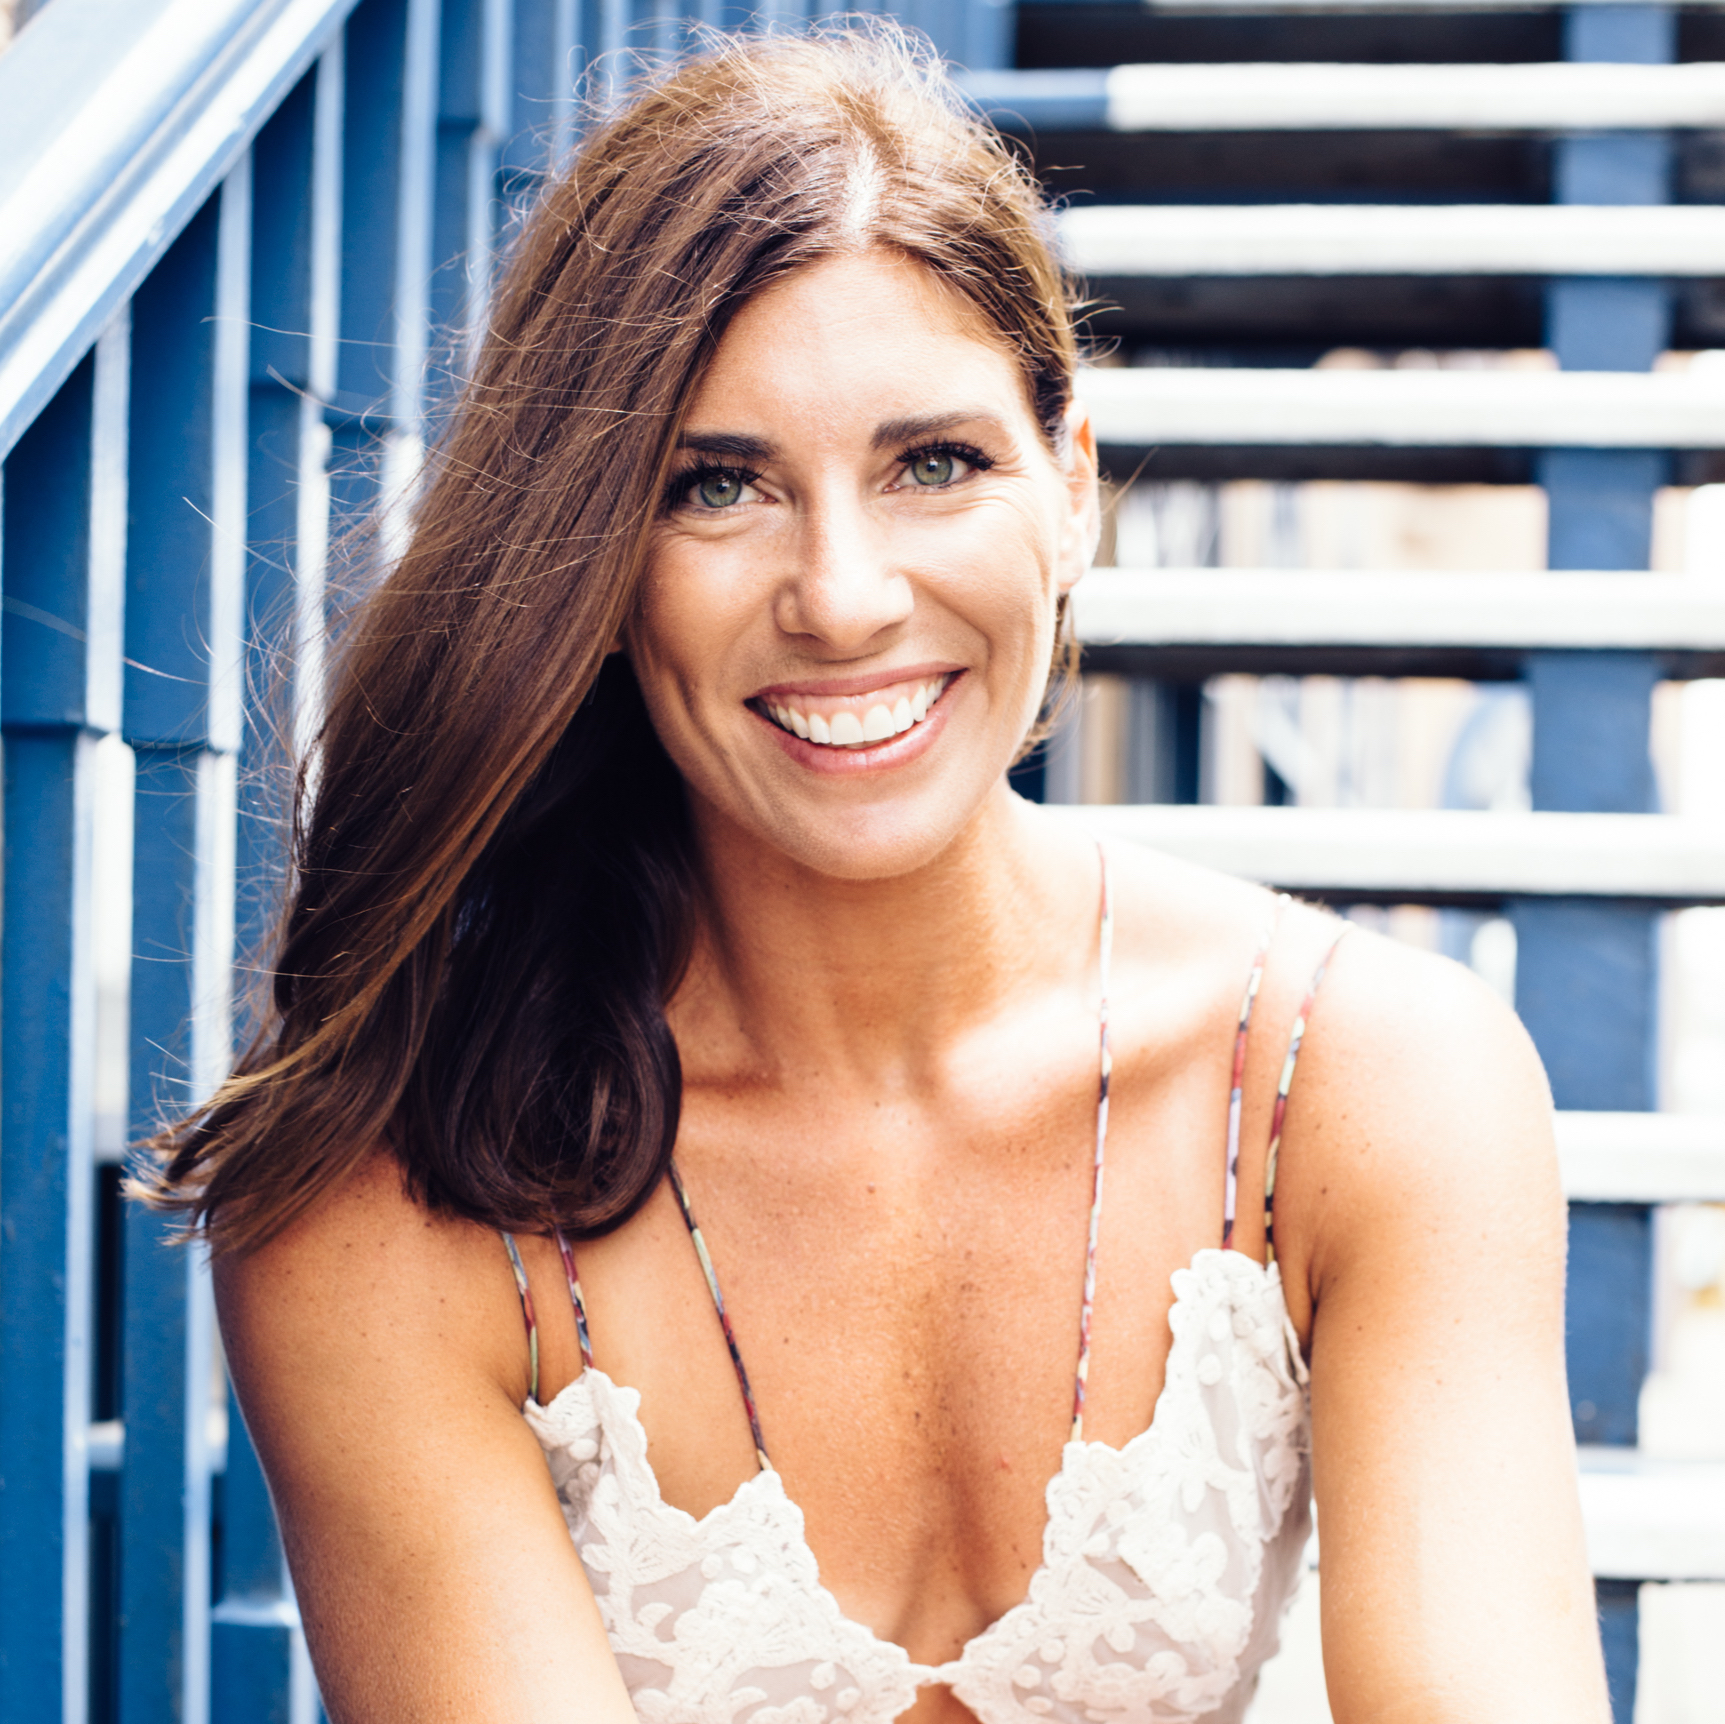 Jill Coleman | Influential Women Every Wellness Entrepreneur Should Follow